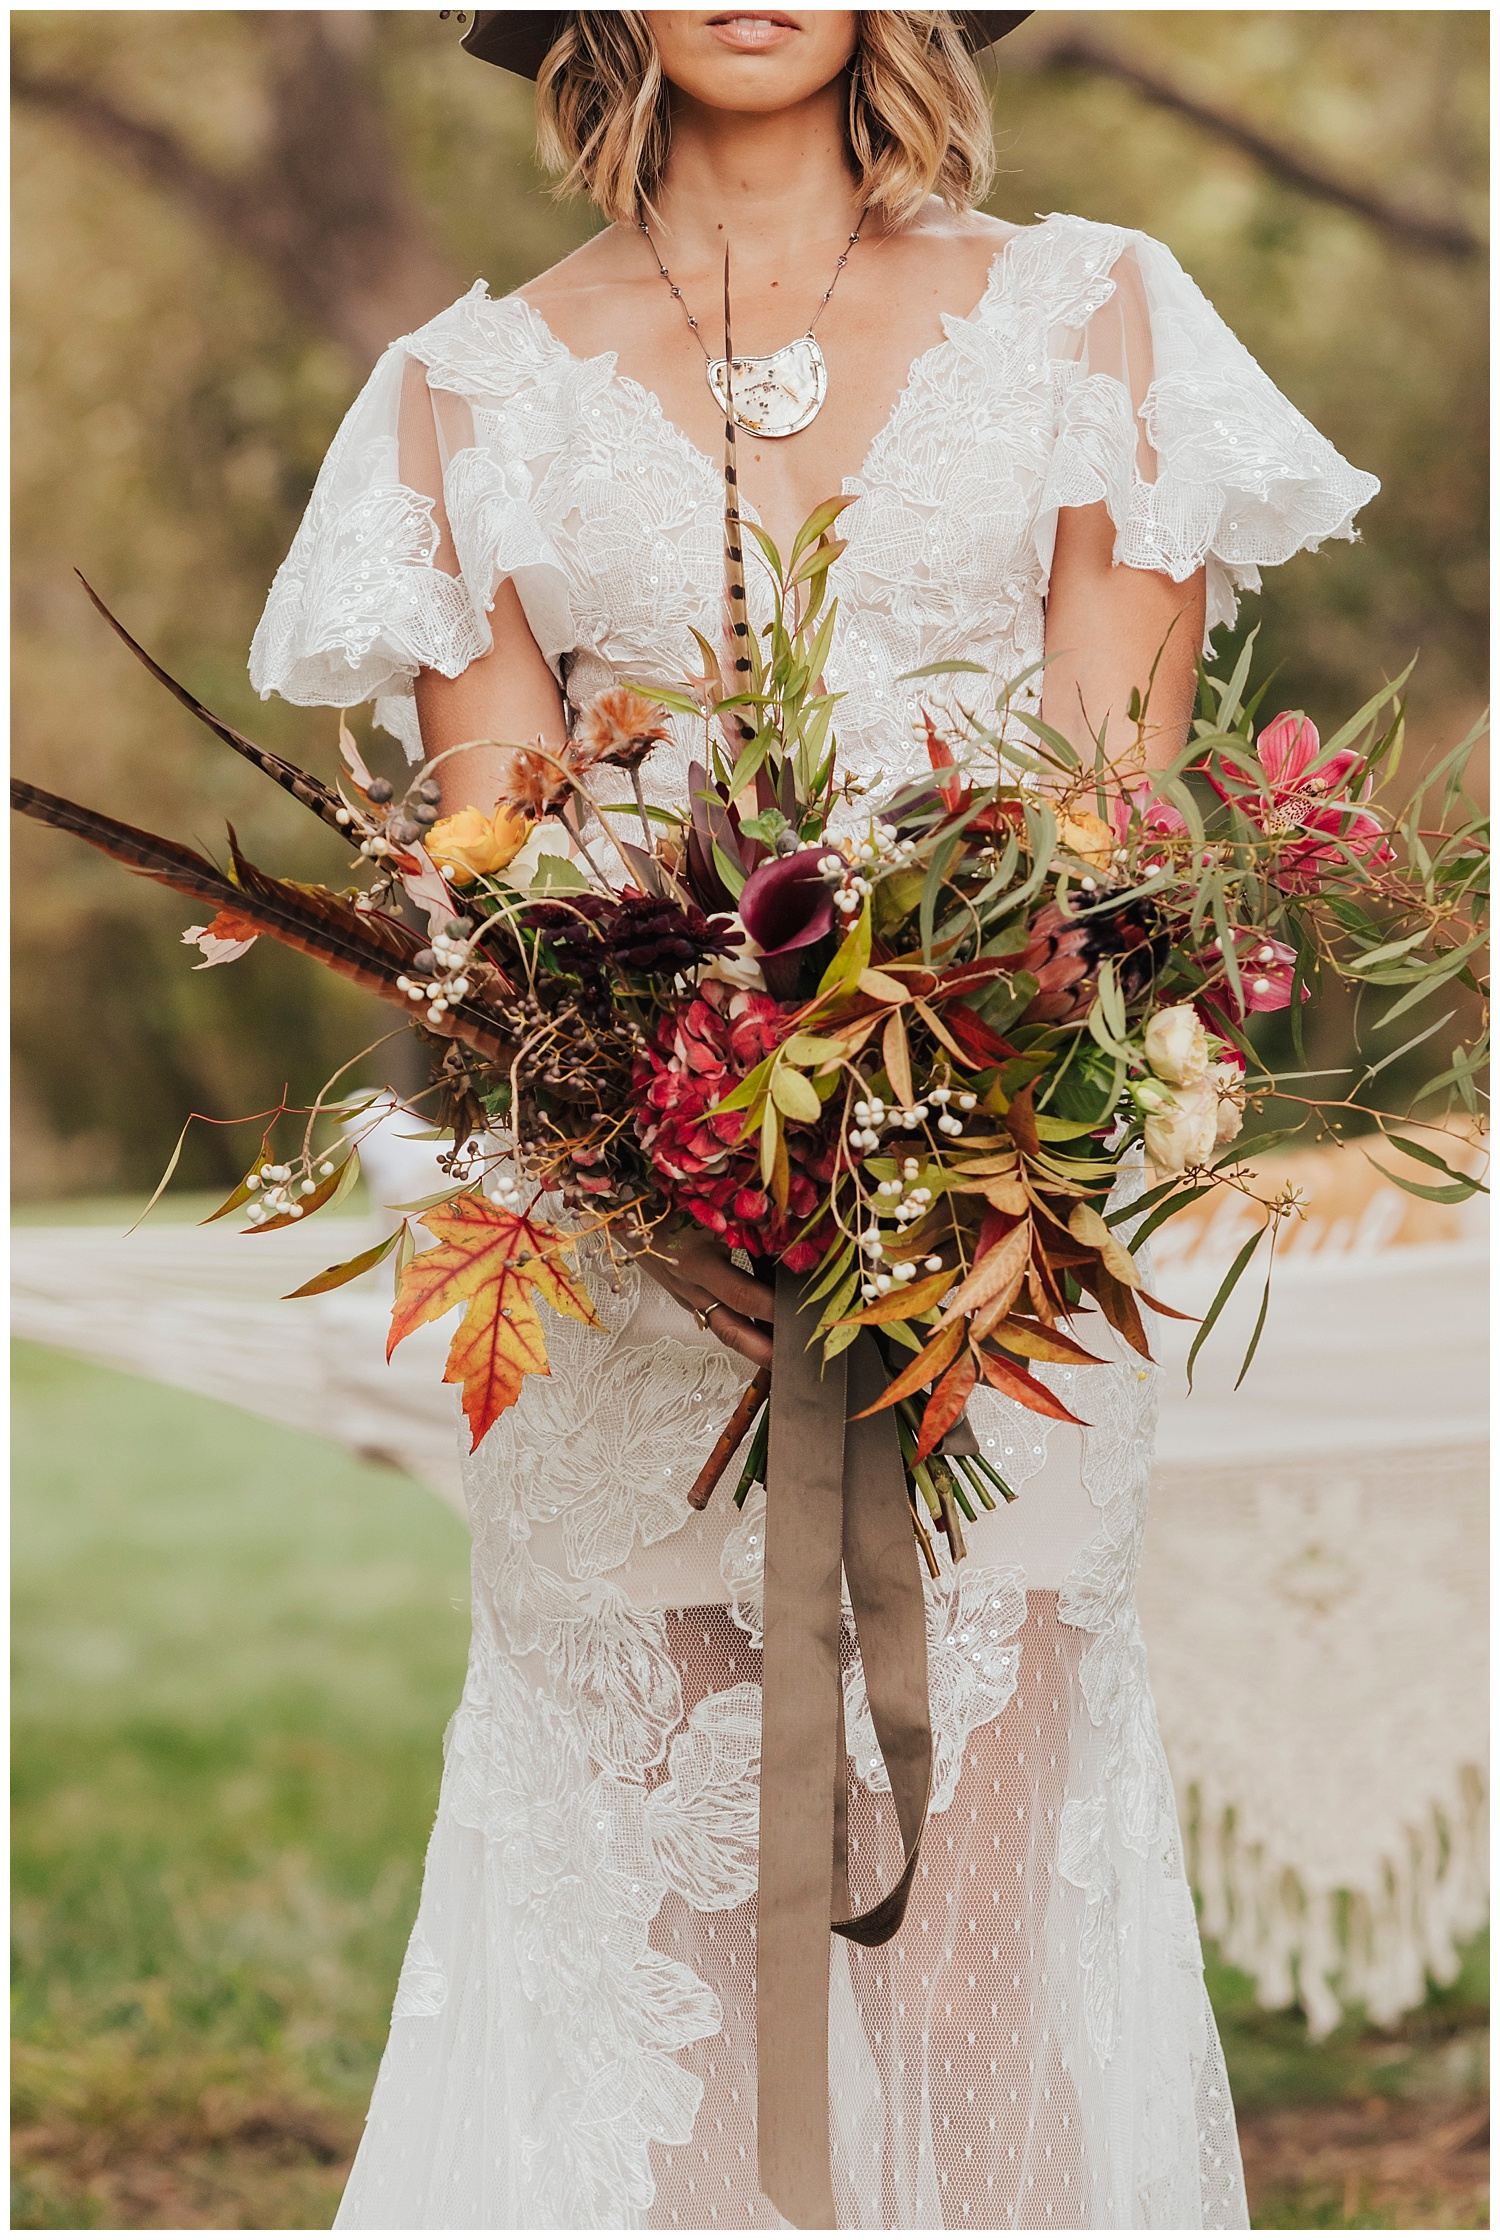 carol oliva photography Evelyn  bridal gowns